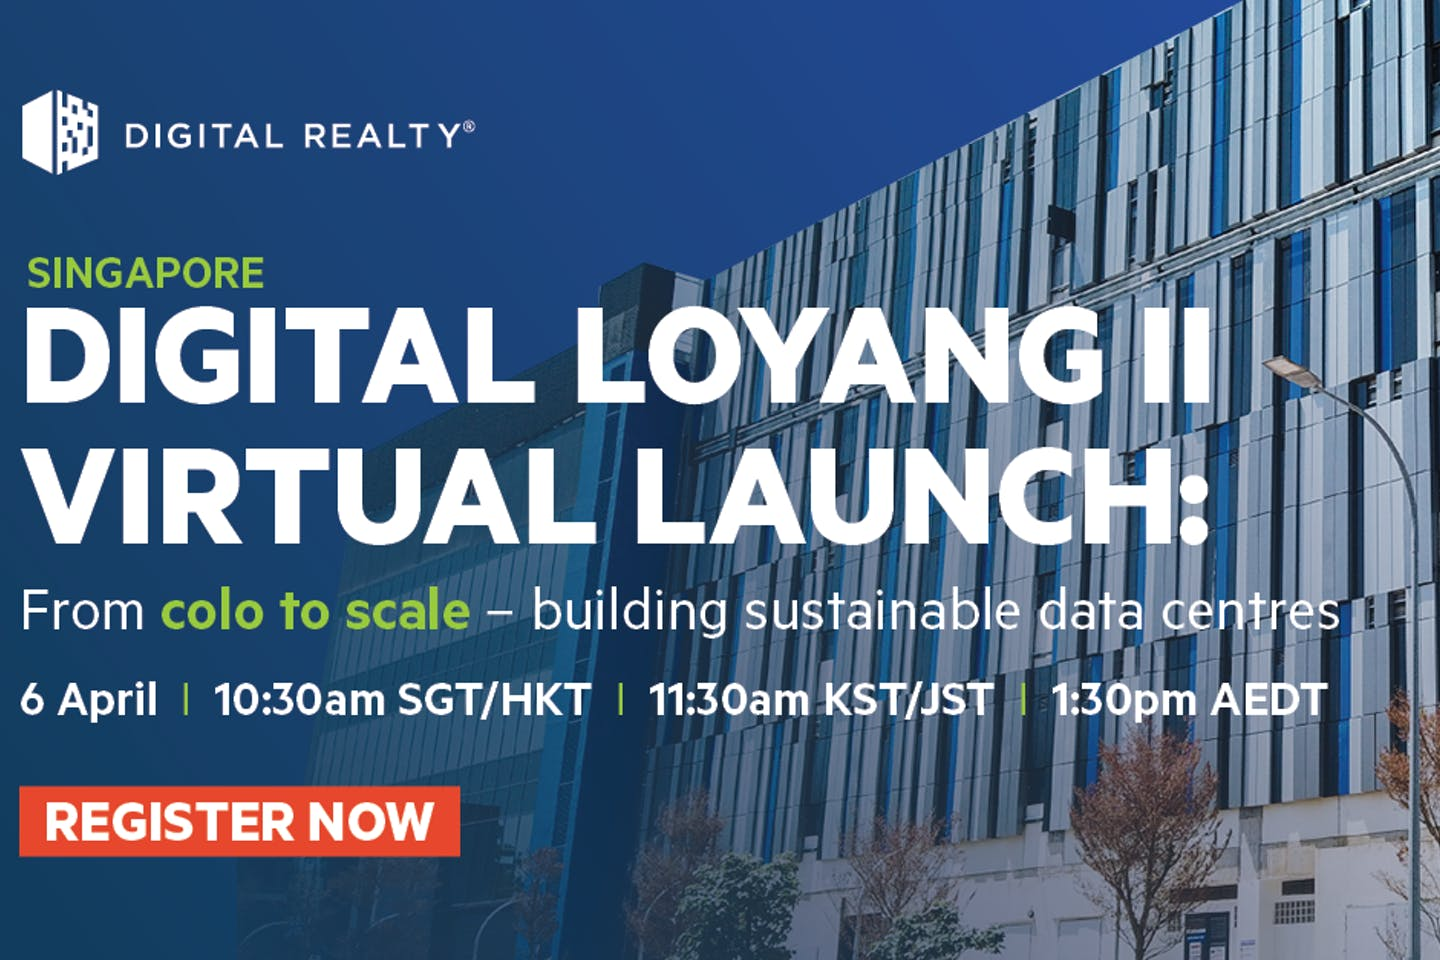 Digital Loyang II (SIN12) Virtual Launch: Building sustainable data centres